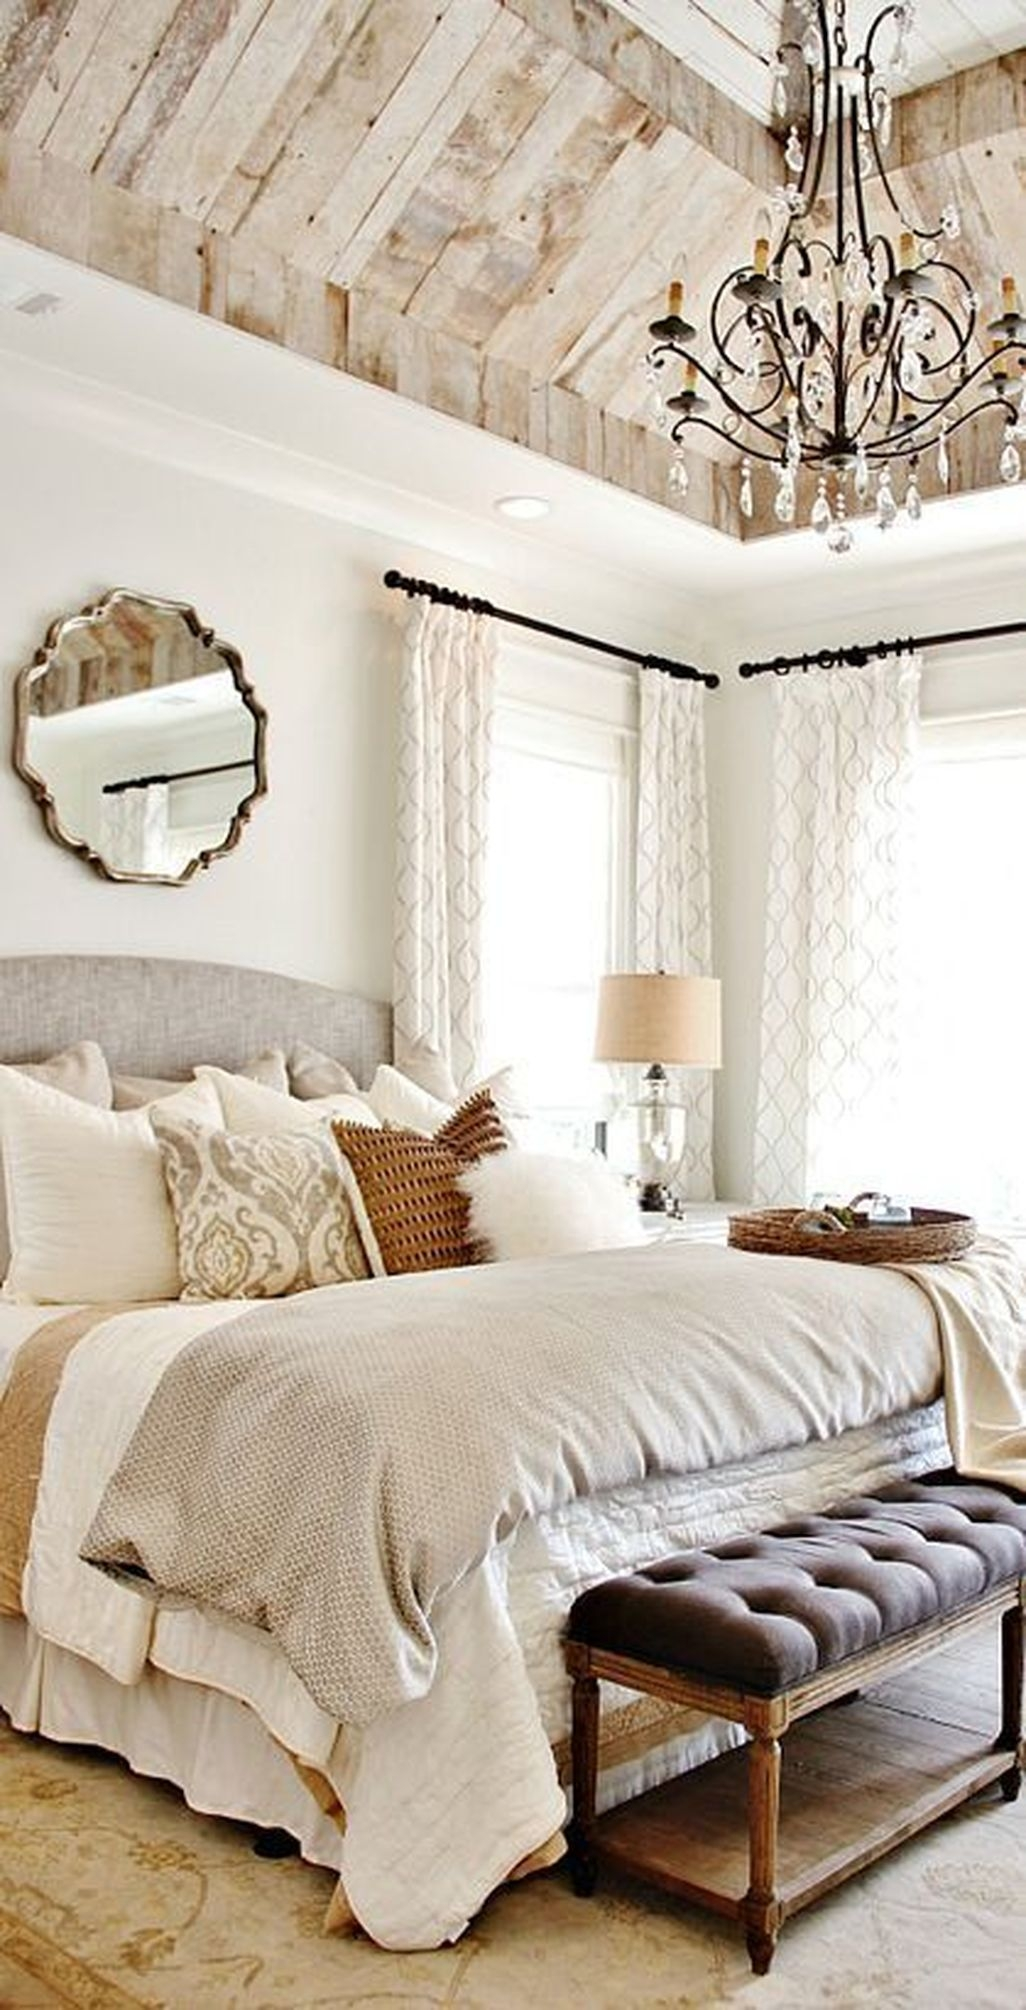 Awesome Rustic Farmhouse Bedroom Decoration Ideas 07